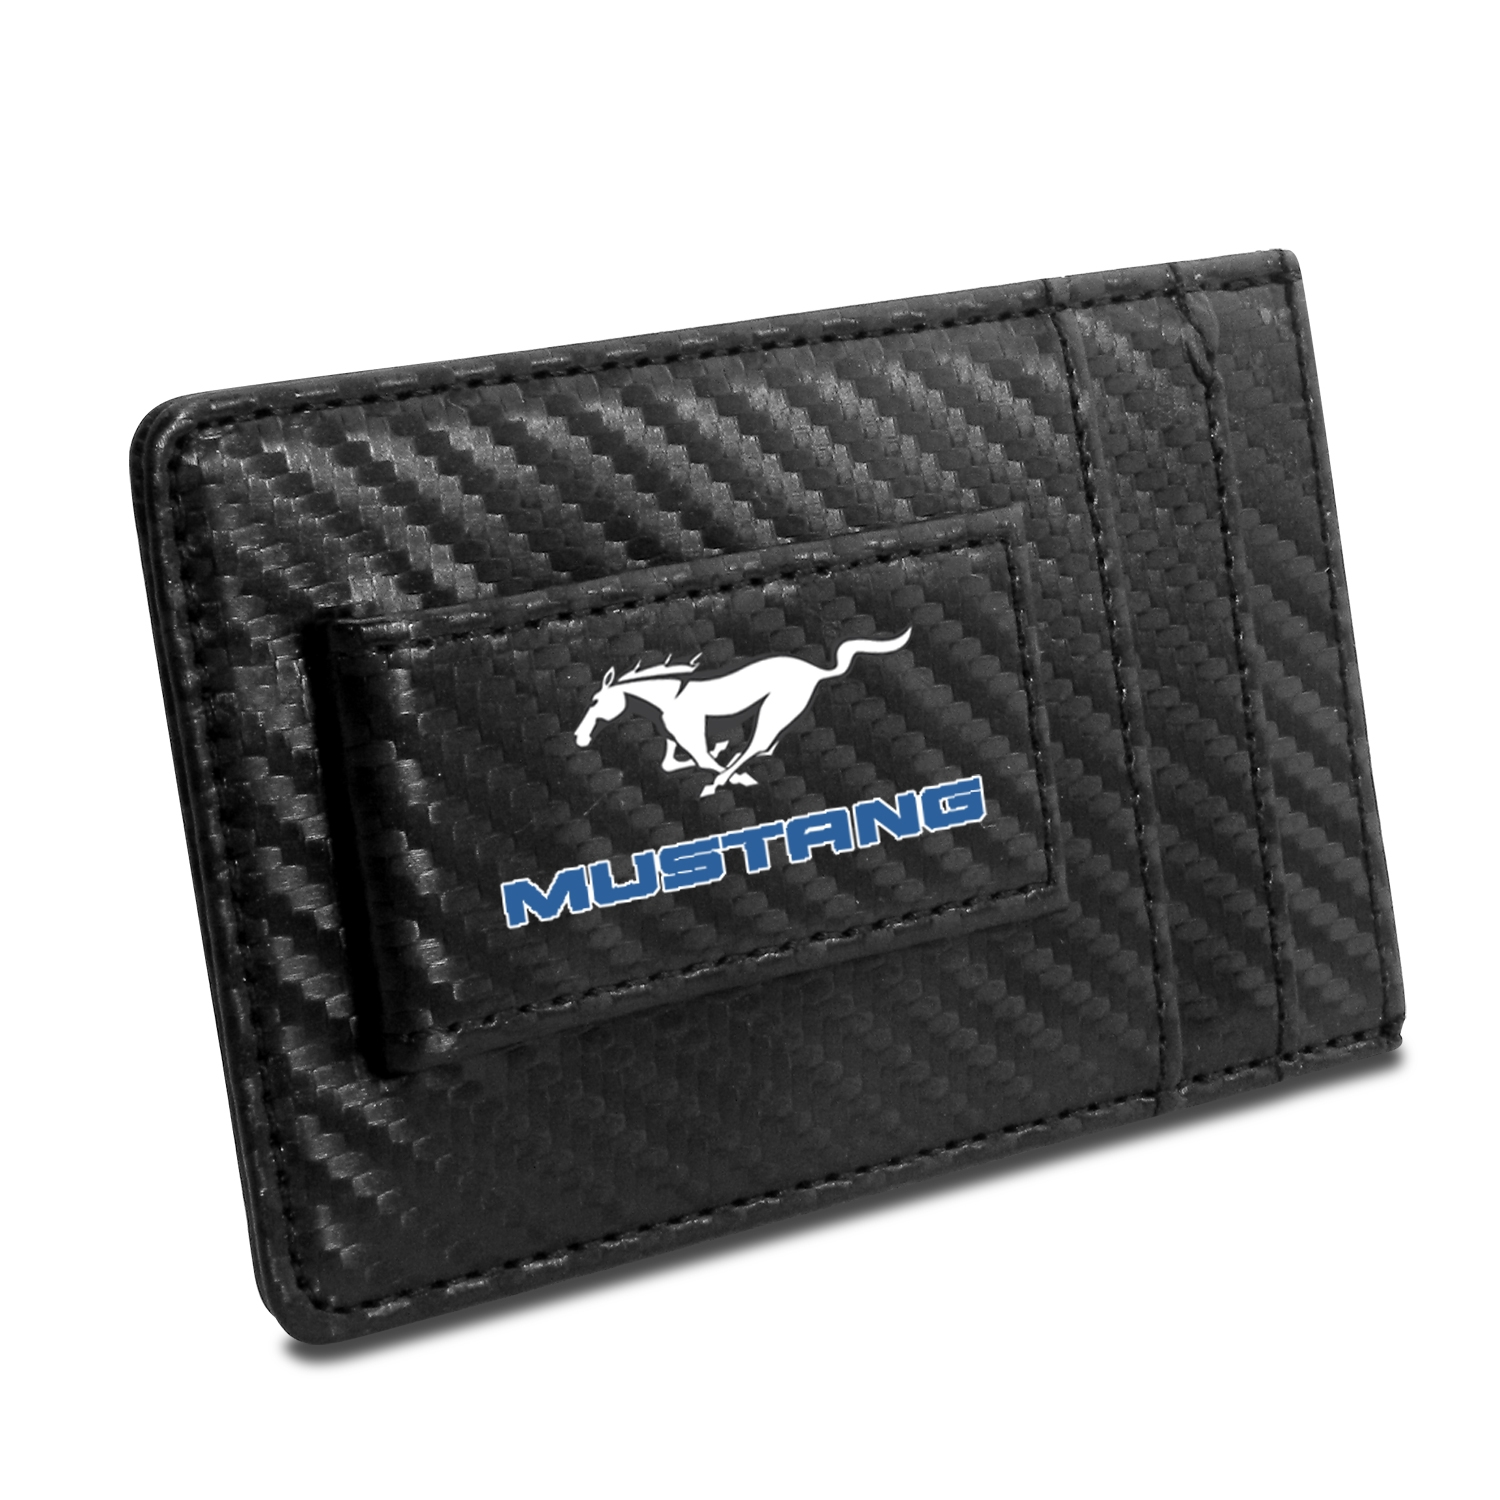 Ford Mustang in Blue Black Carbon Fiber RFID Card Holder Wallet